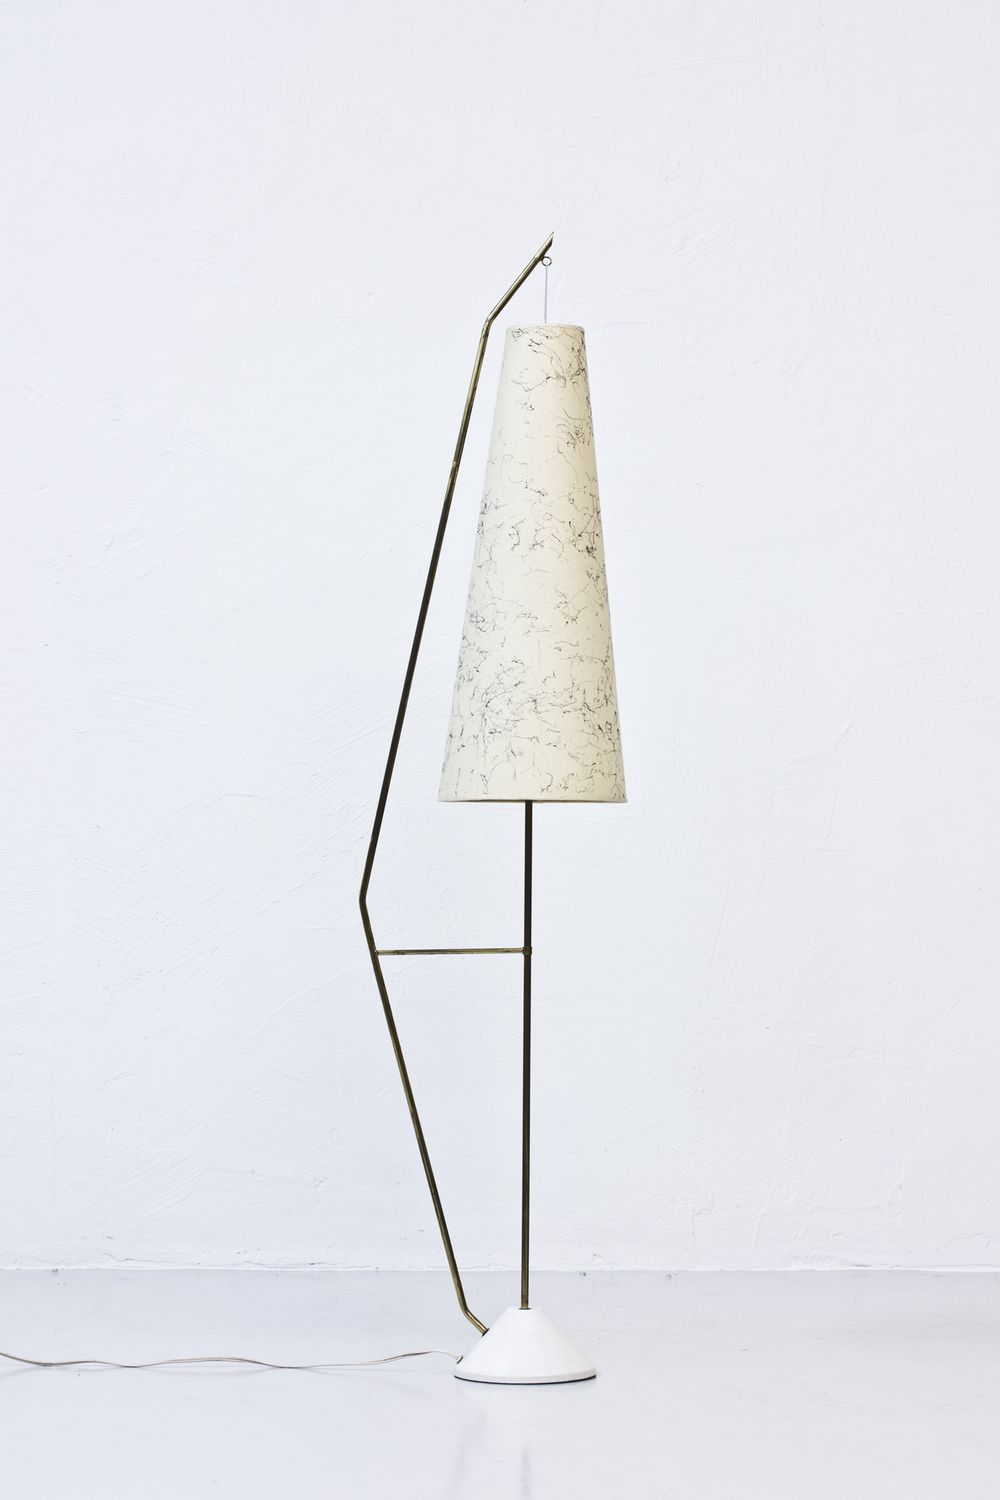 Modernist 1950s Floor Lamp Via Modernisten Click On The Image To See More Decorative Floor Lamps Modern Lamp Shades Antique Lamp Shades